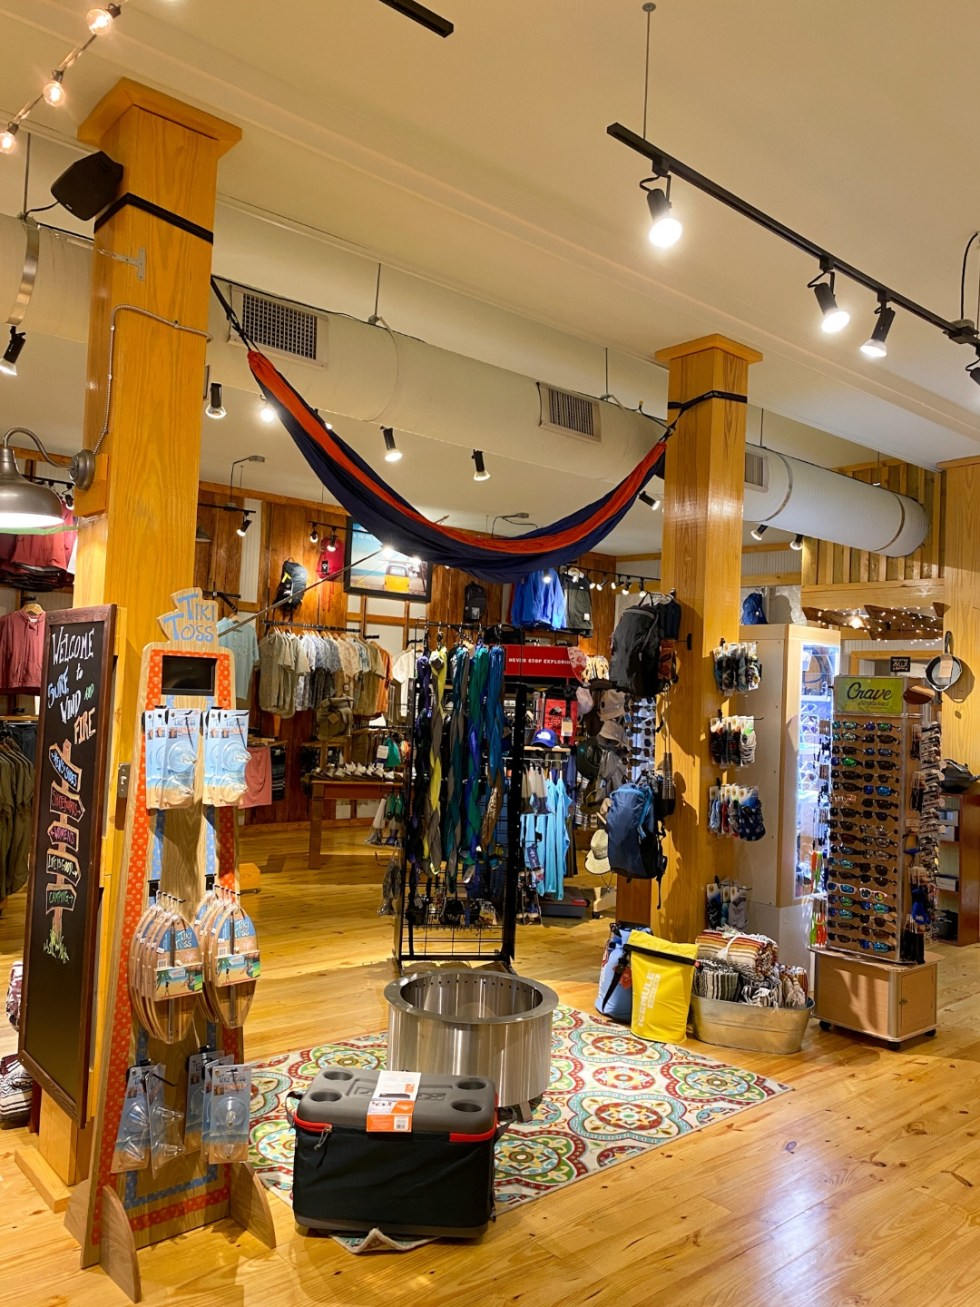 Top 10 Best Things to Do in Edenton, NC: A Complete Travel Guide - I'm Fixin' To - @imfixintoblog | Edenton Travel Guide by popular NC travel guid, I'm Fixin' To: image of a store filled with camping gear.